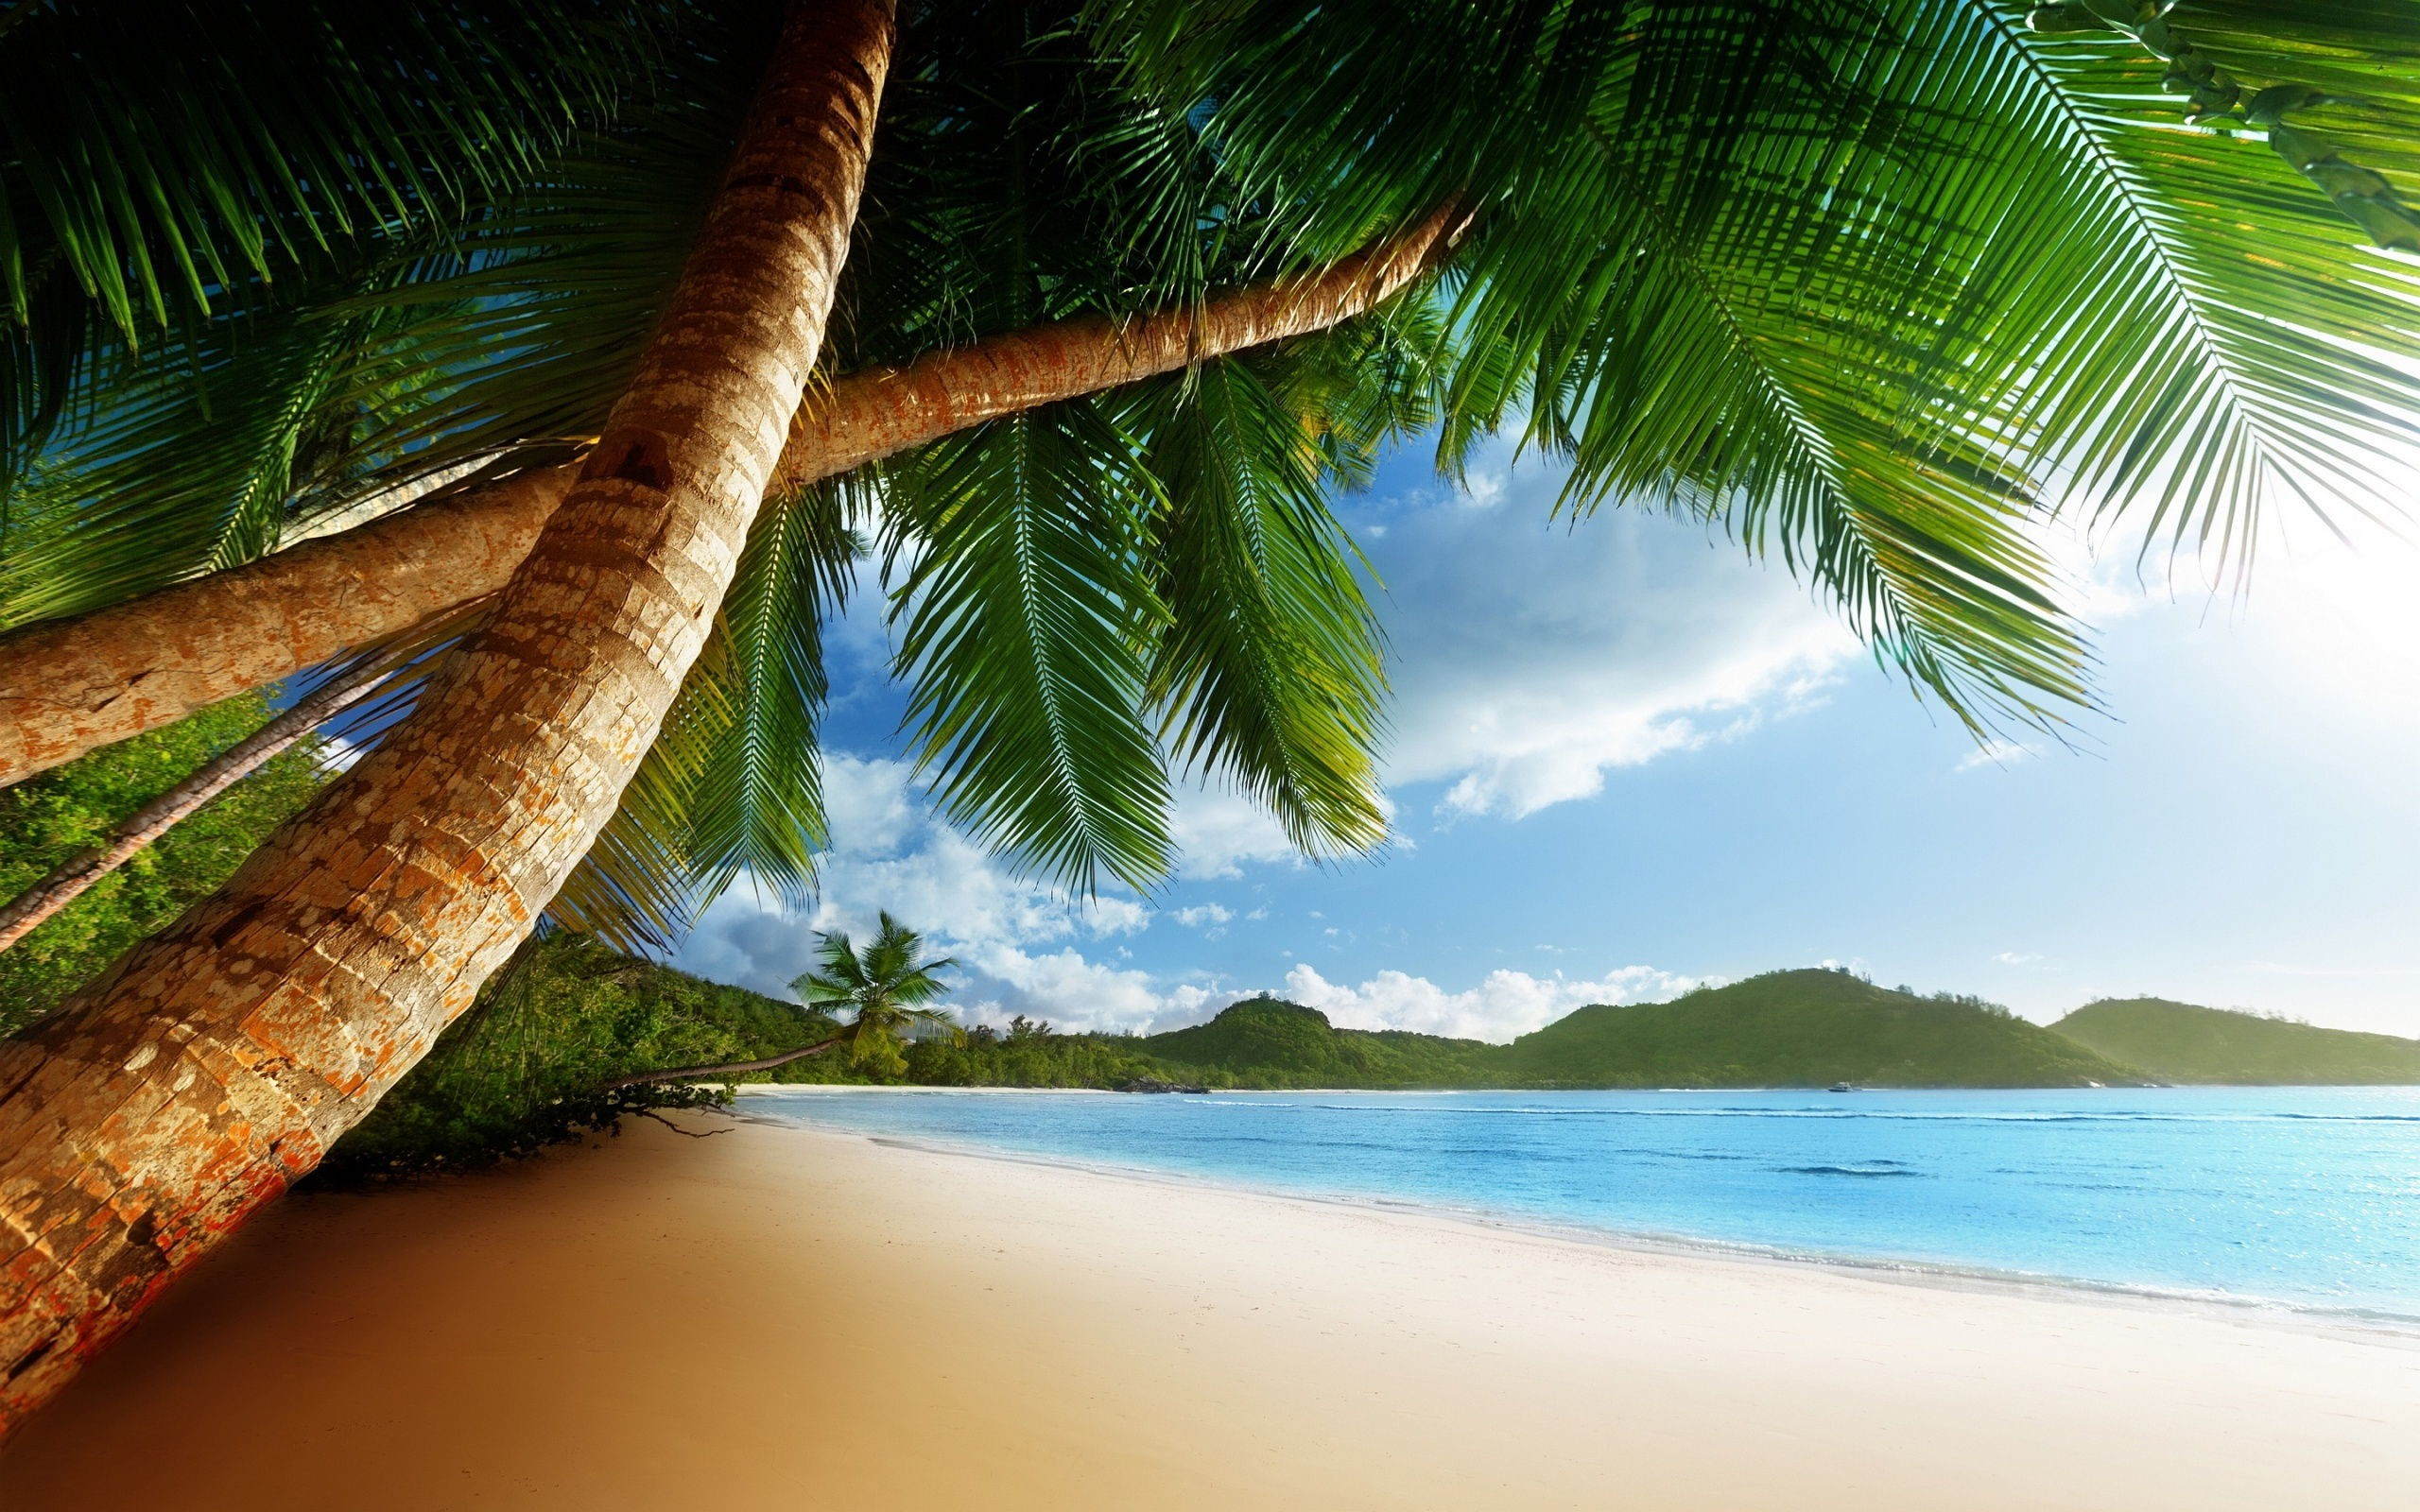 2560x1600 Awesome Caribbean Background Pictures New Best Hd Wallpaper Of Caribbean1